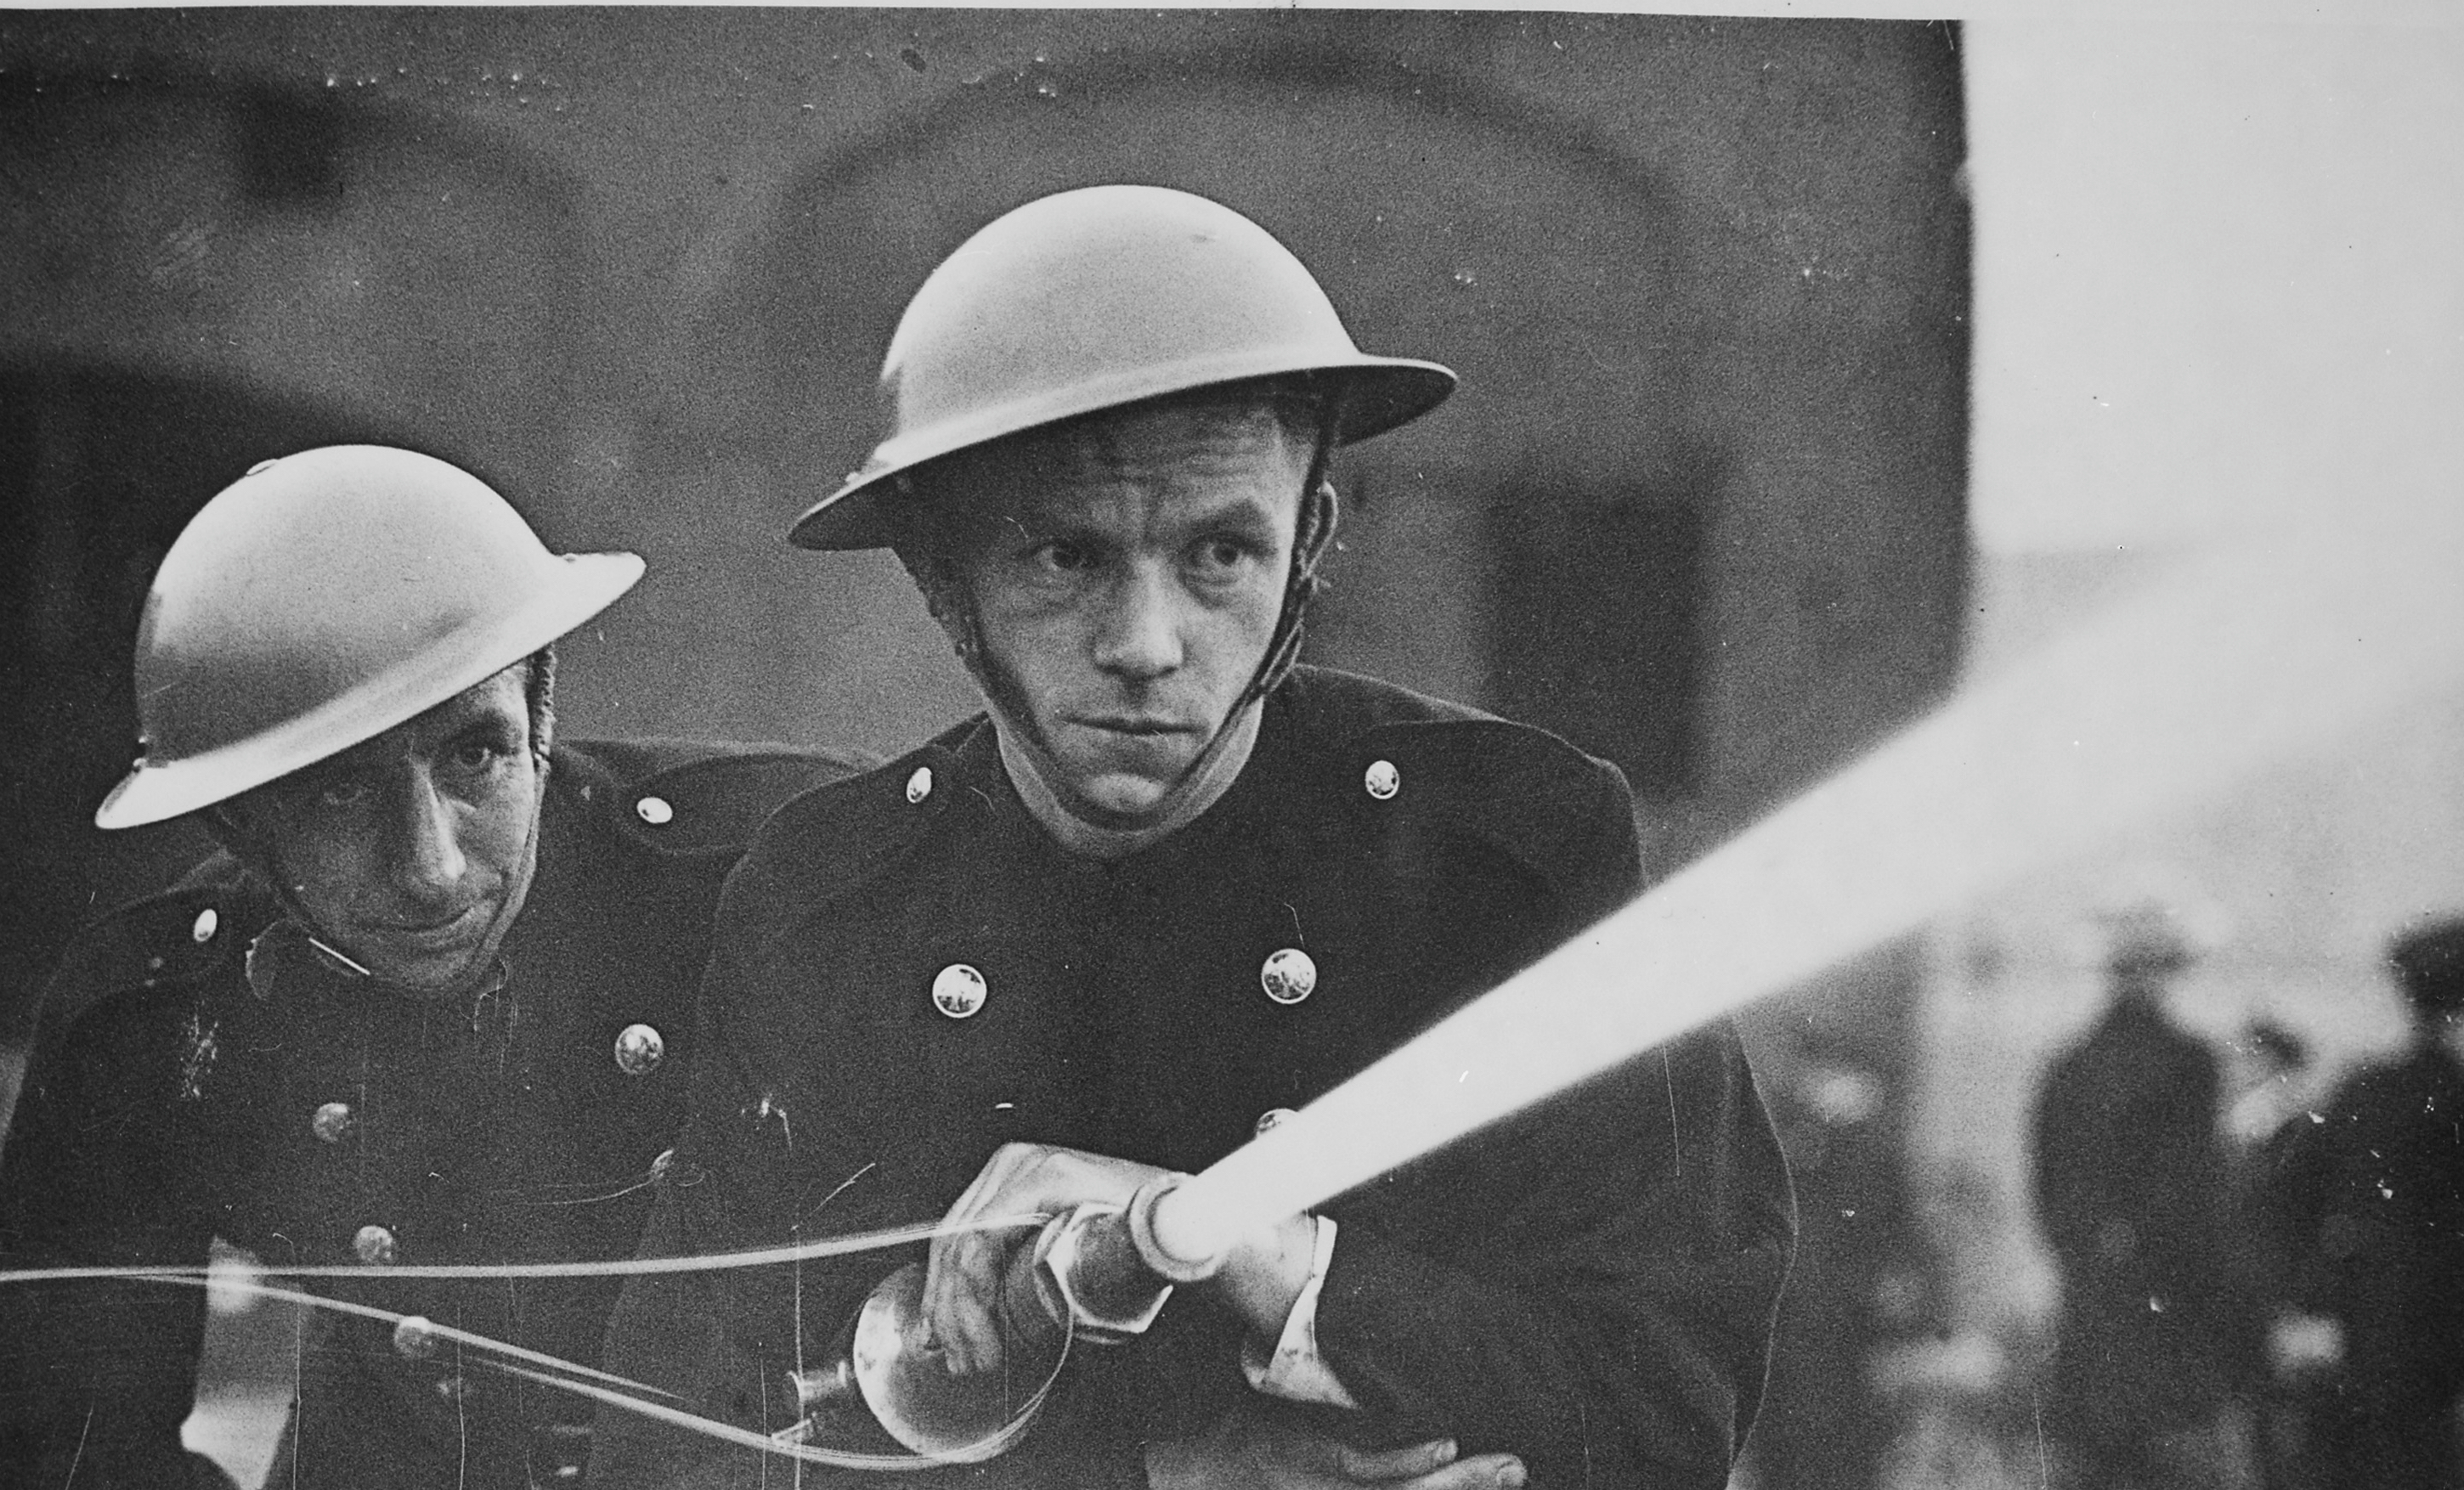 A black and white photograph of historical firefighters